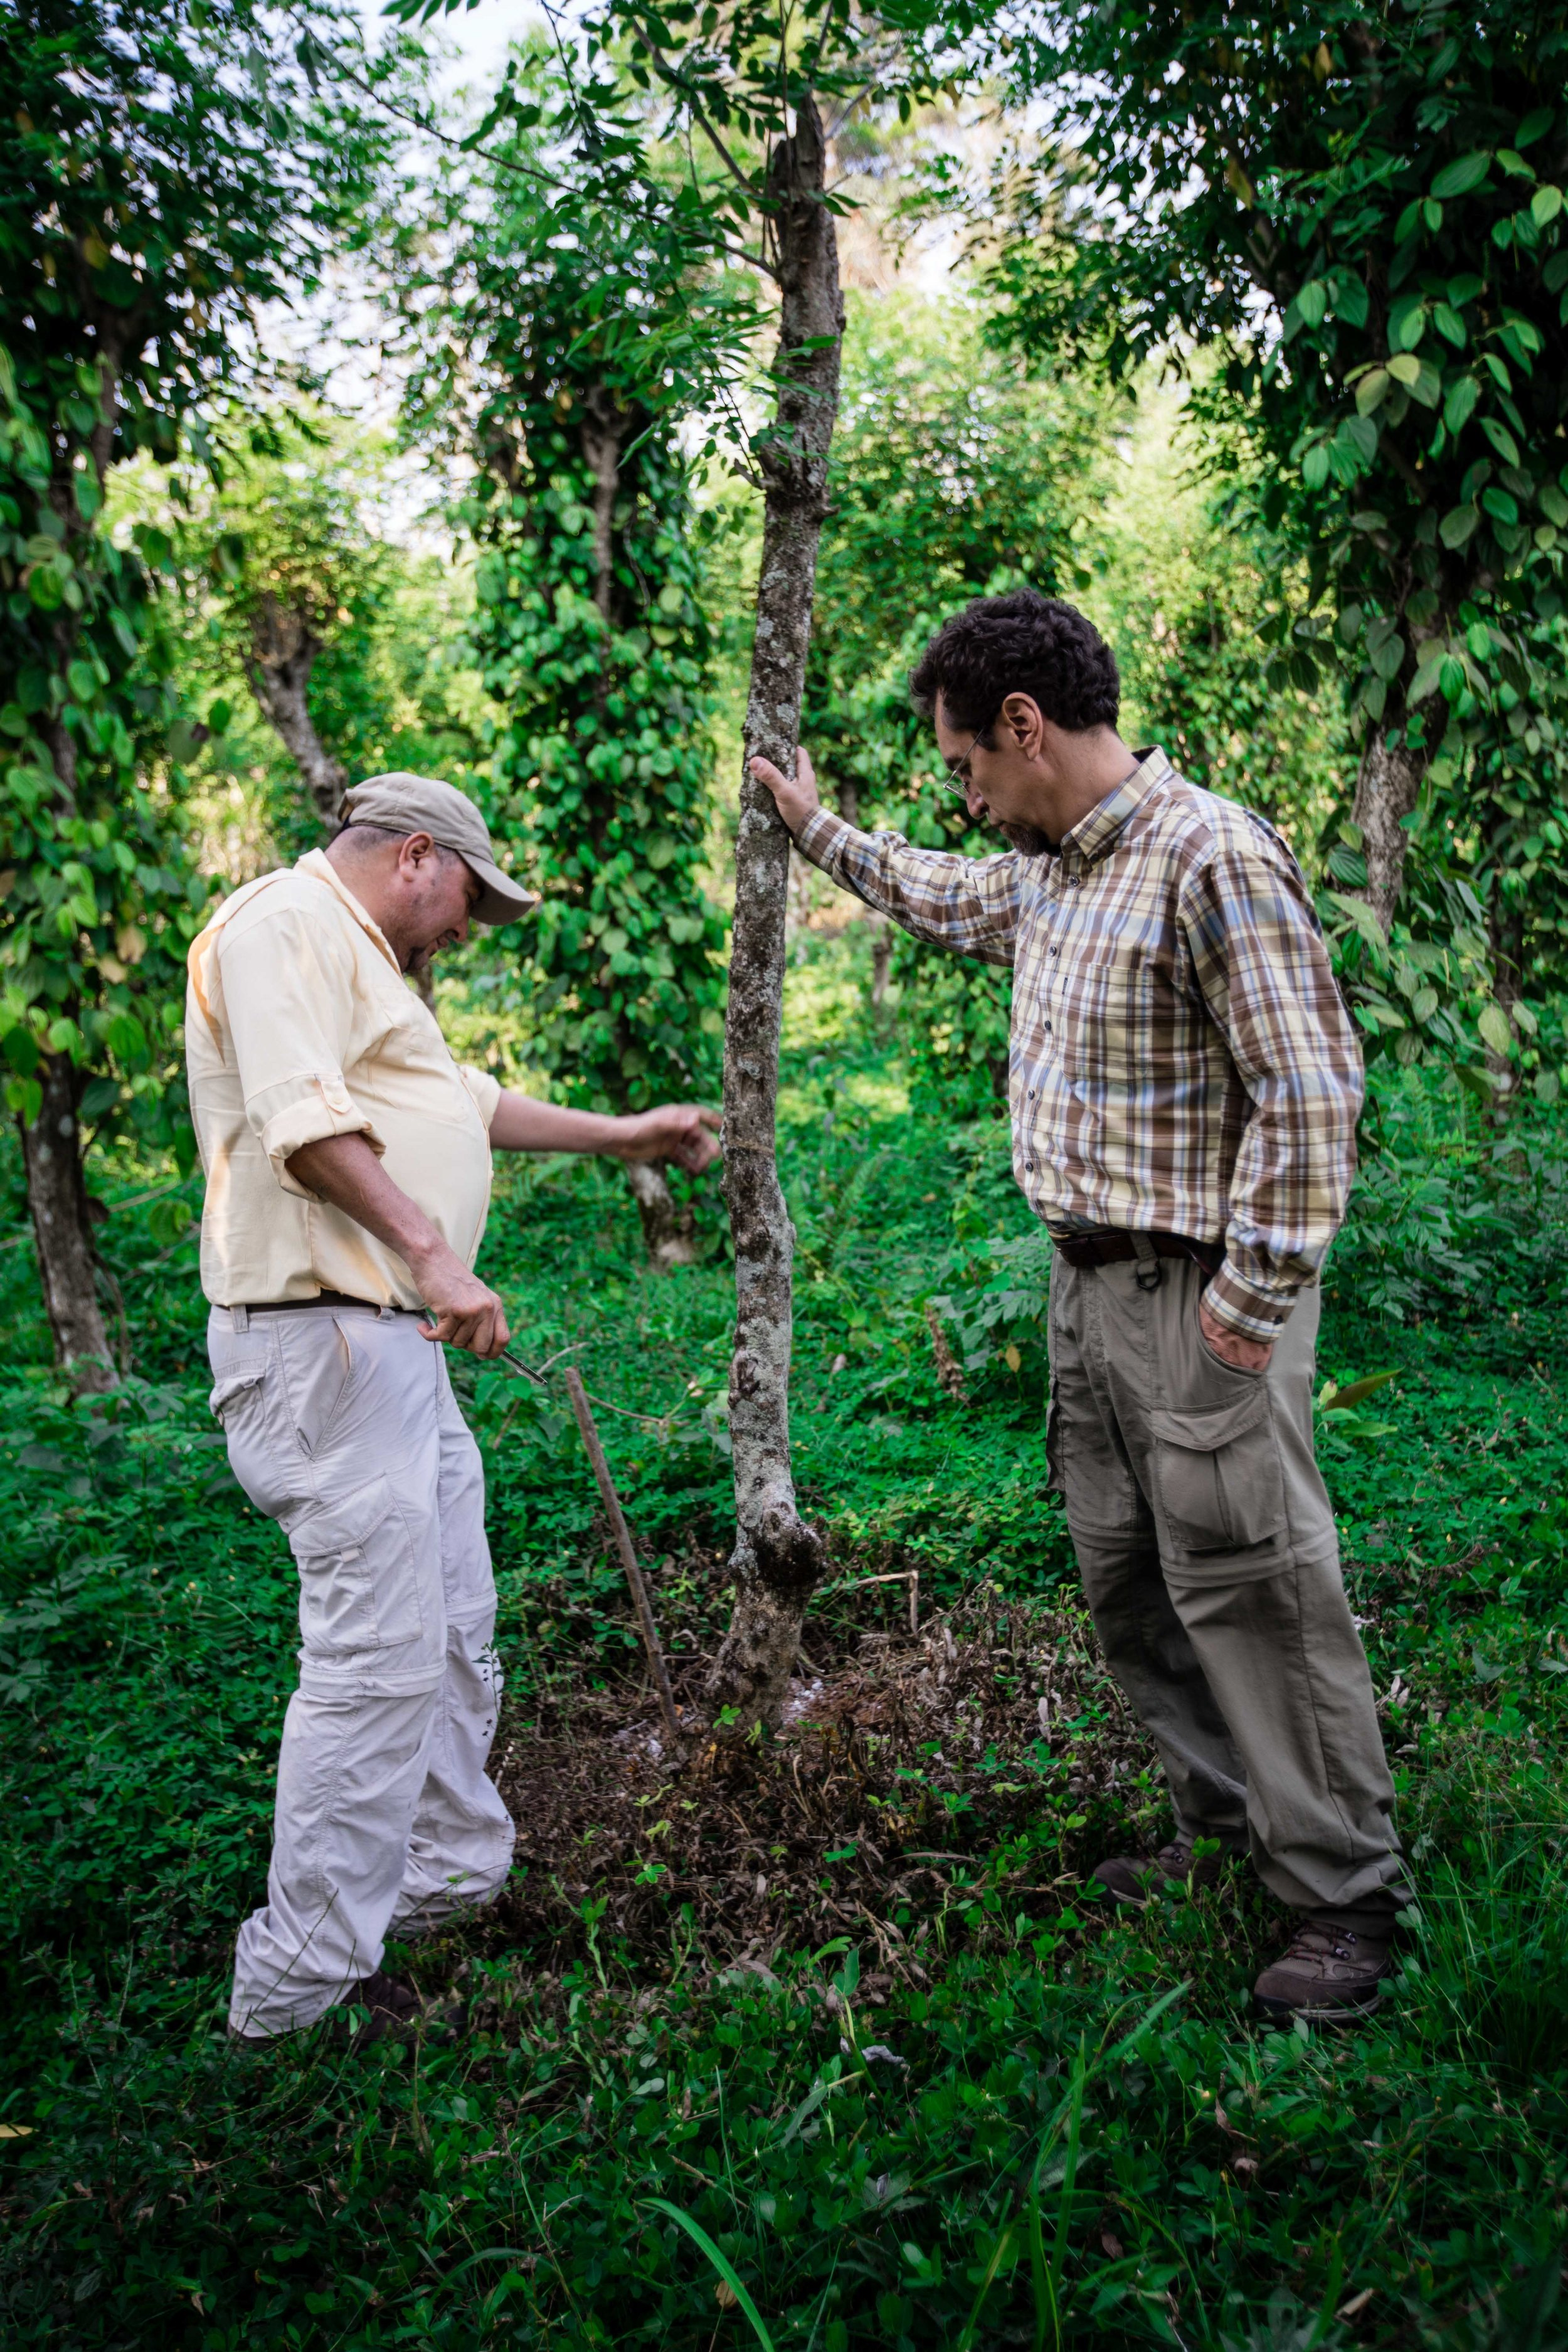 Examining the replanting of trees